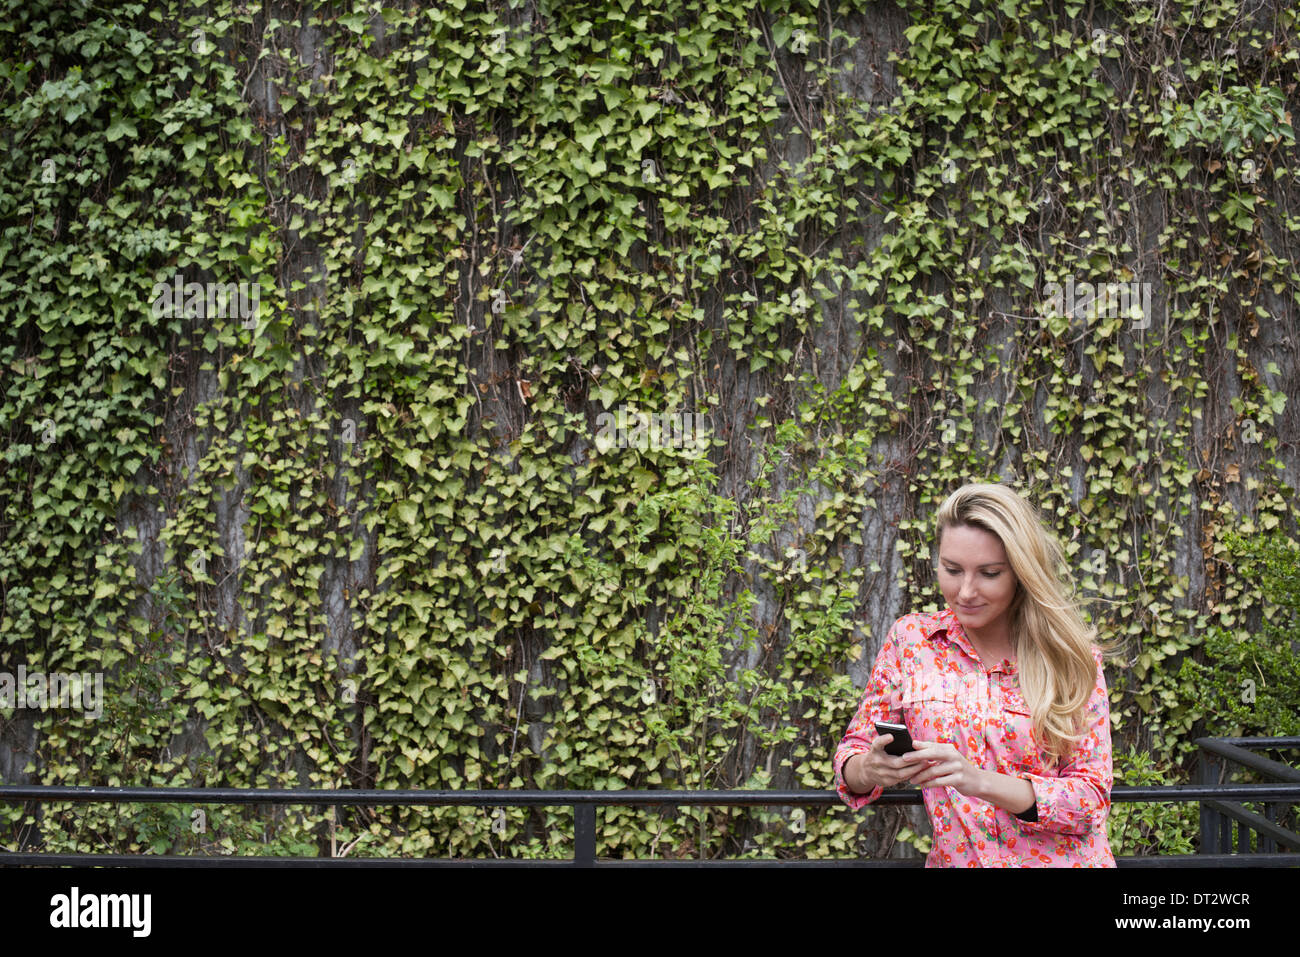 Spring City park with a wall covered in climbing plants and ivy A young blonde haired woman checking her smart phone Stock Photo